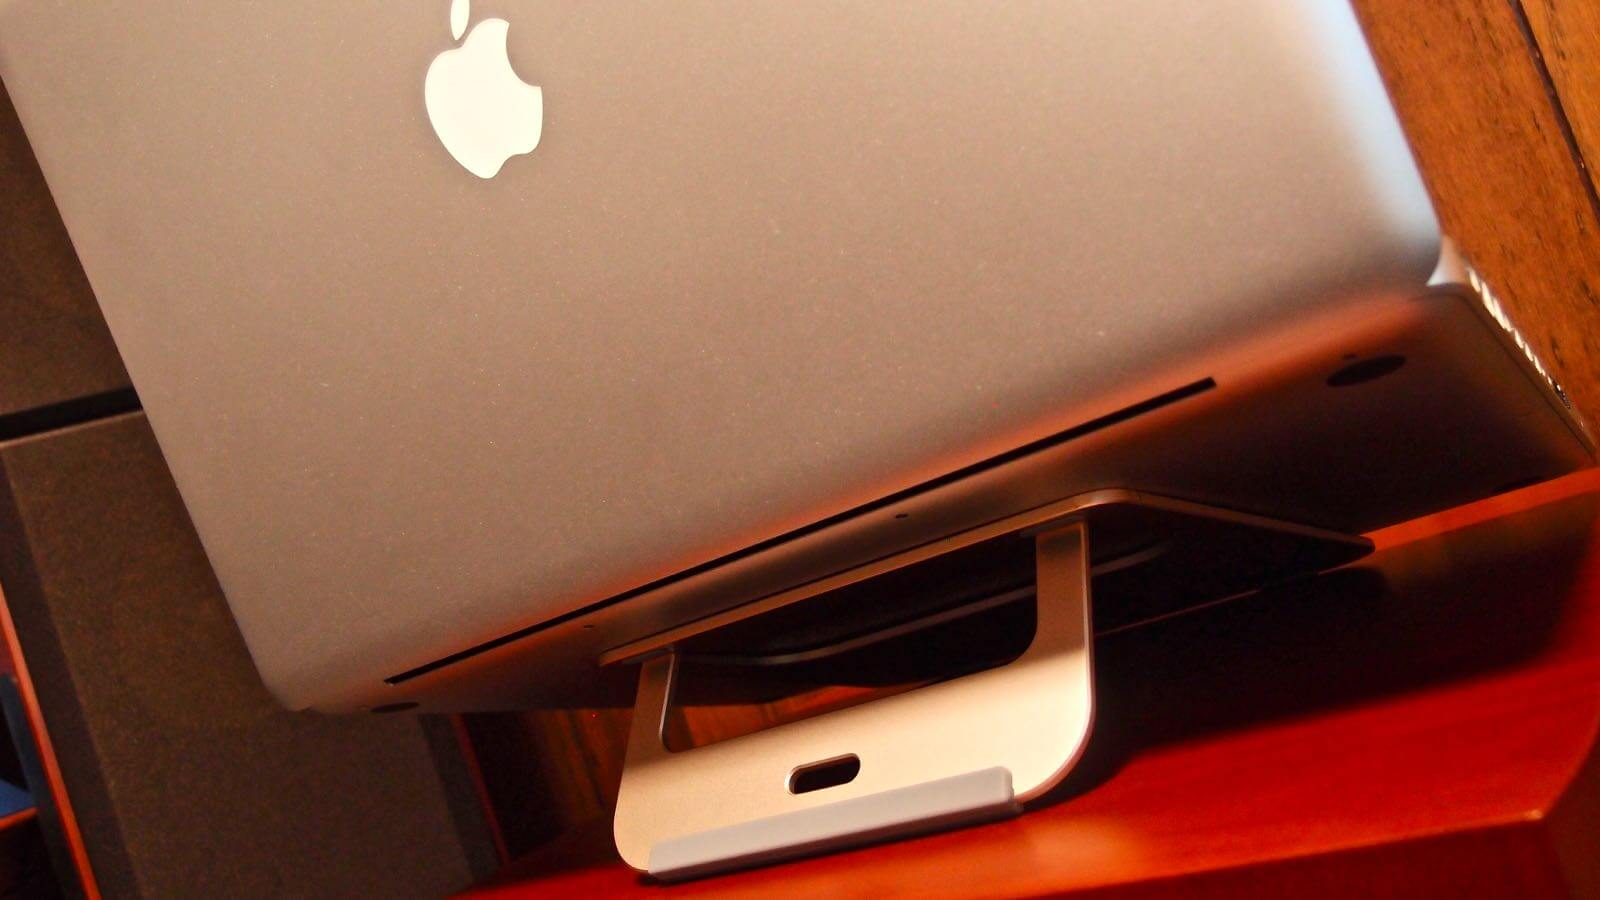 0161 Satechi Aliminum Laptop Stand Review 14